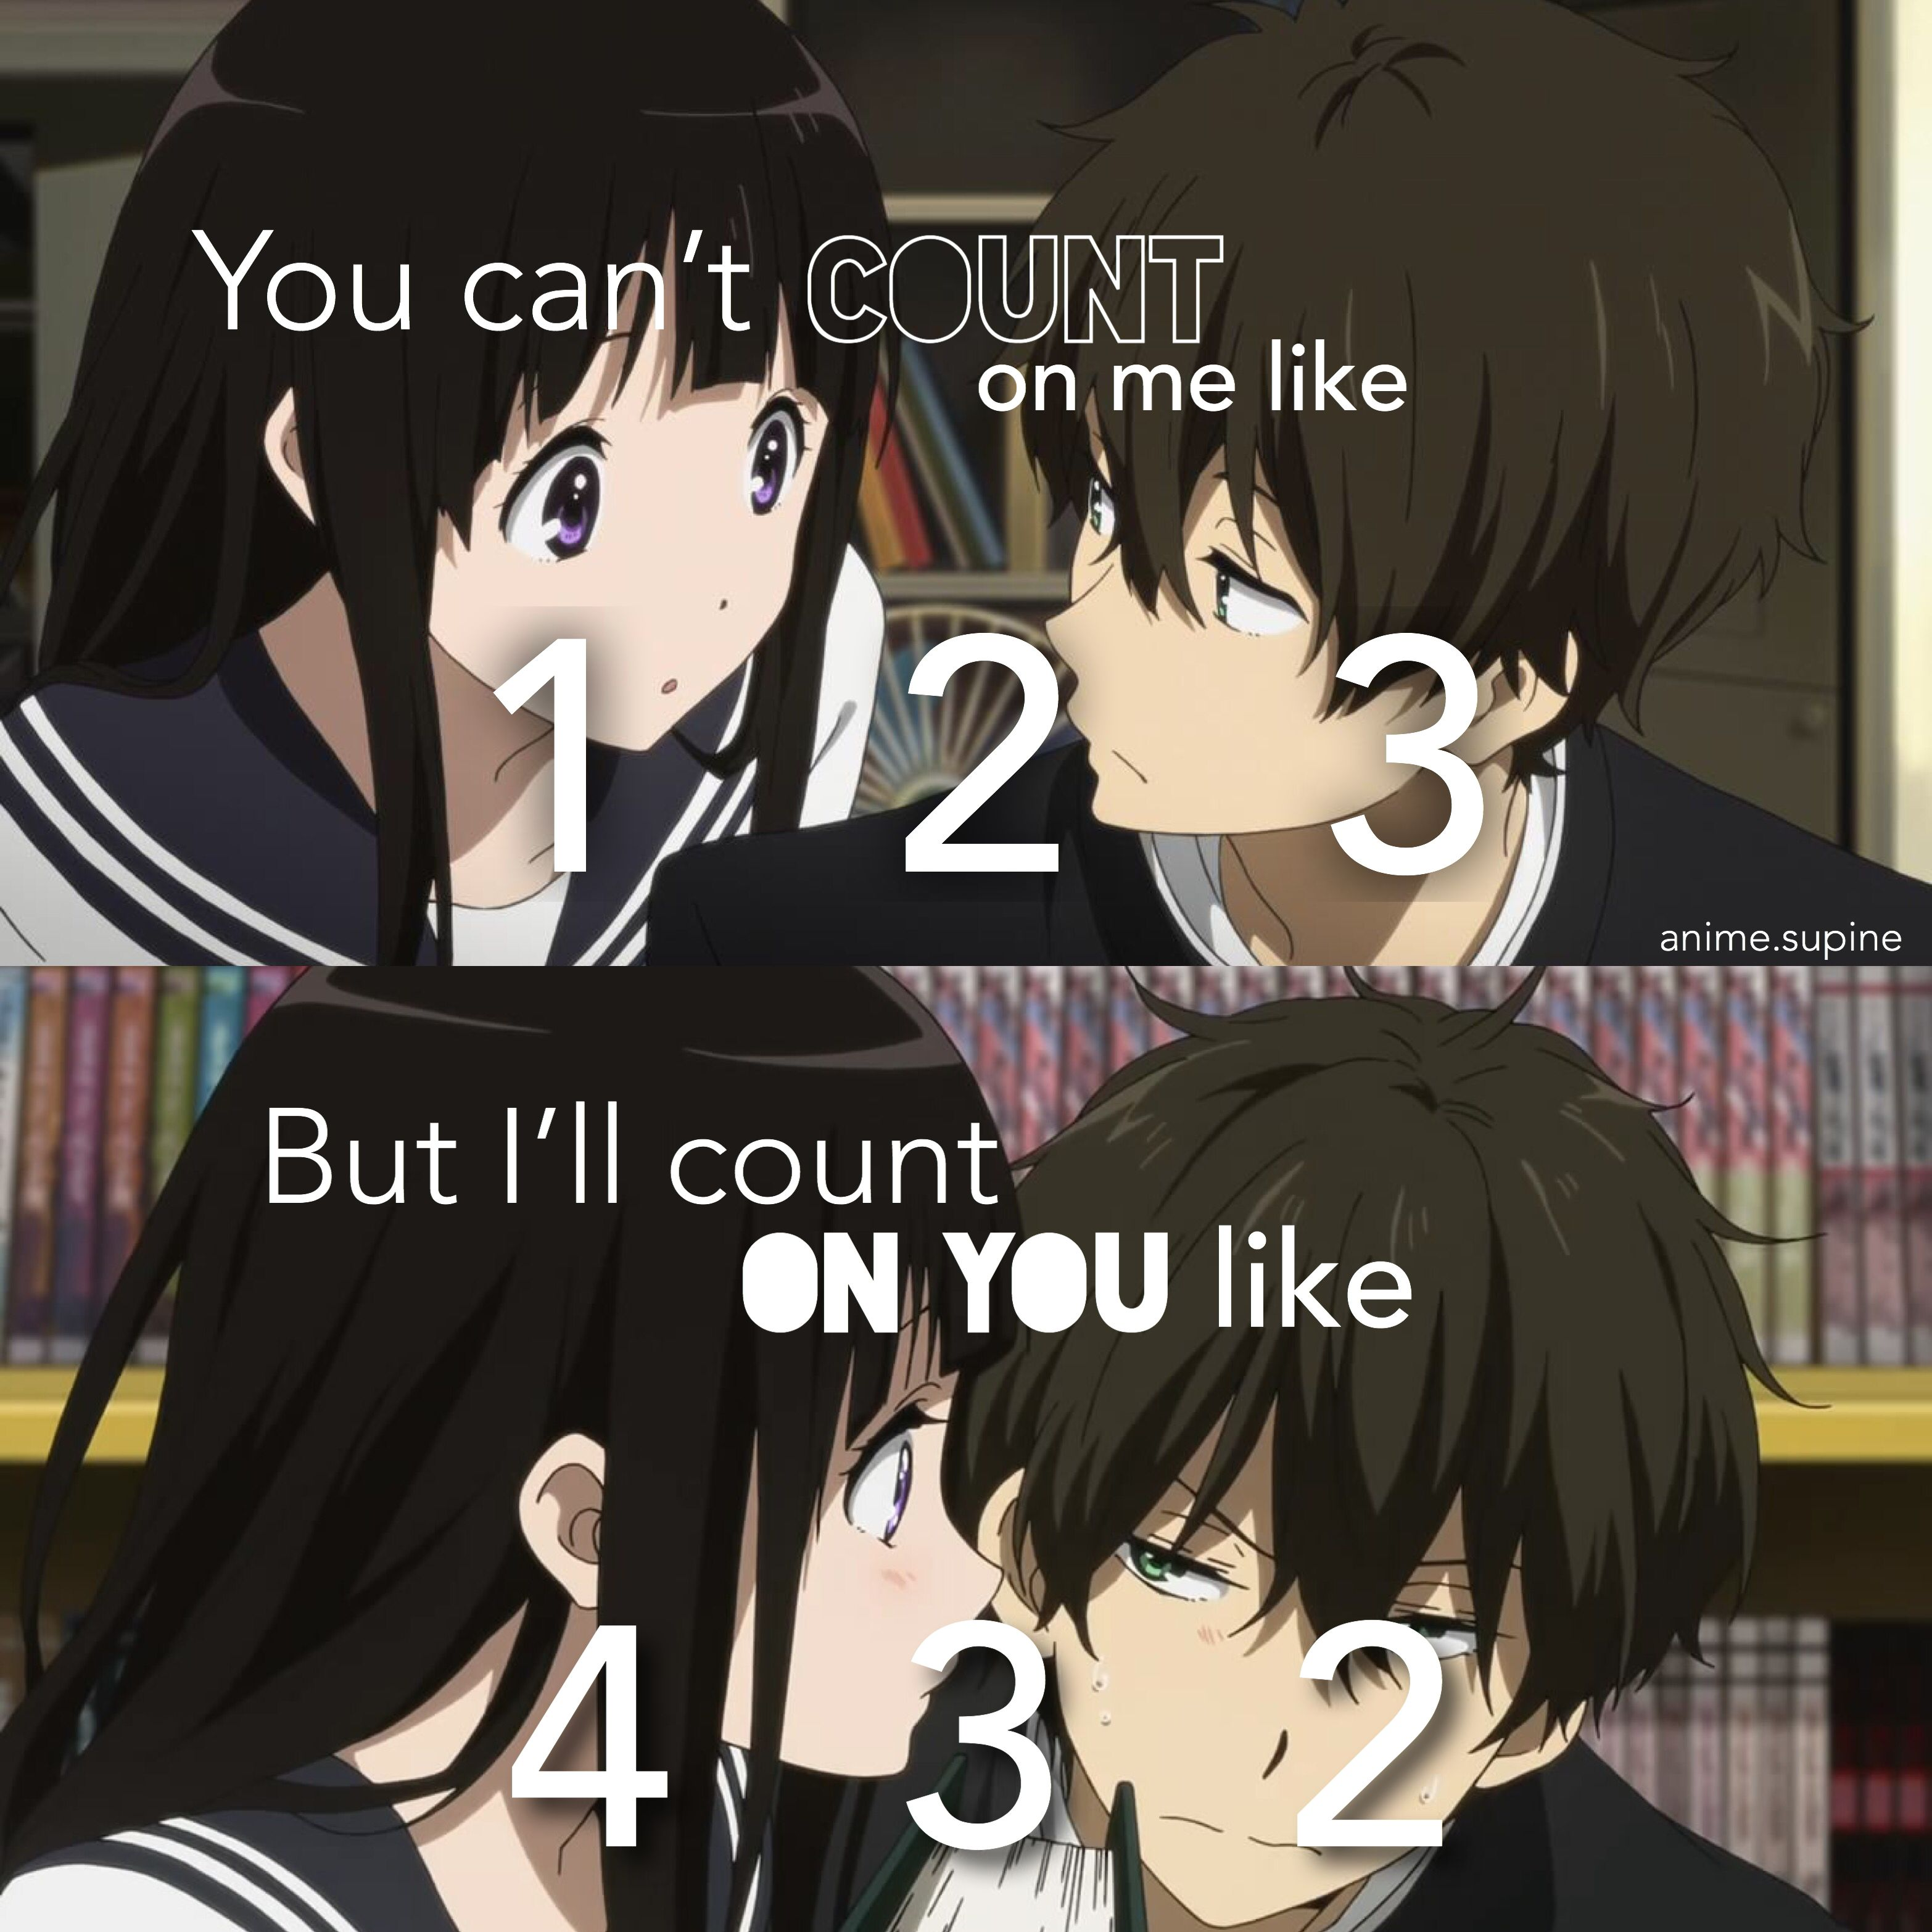 I Was Singing Count On Me But Then Stopped To Realize The Sentence Was Different Animation Quotes Anime Love Quotes Anime Quotes